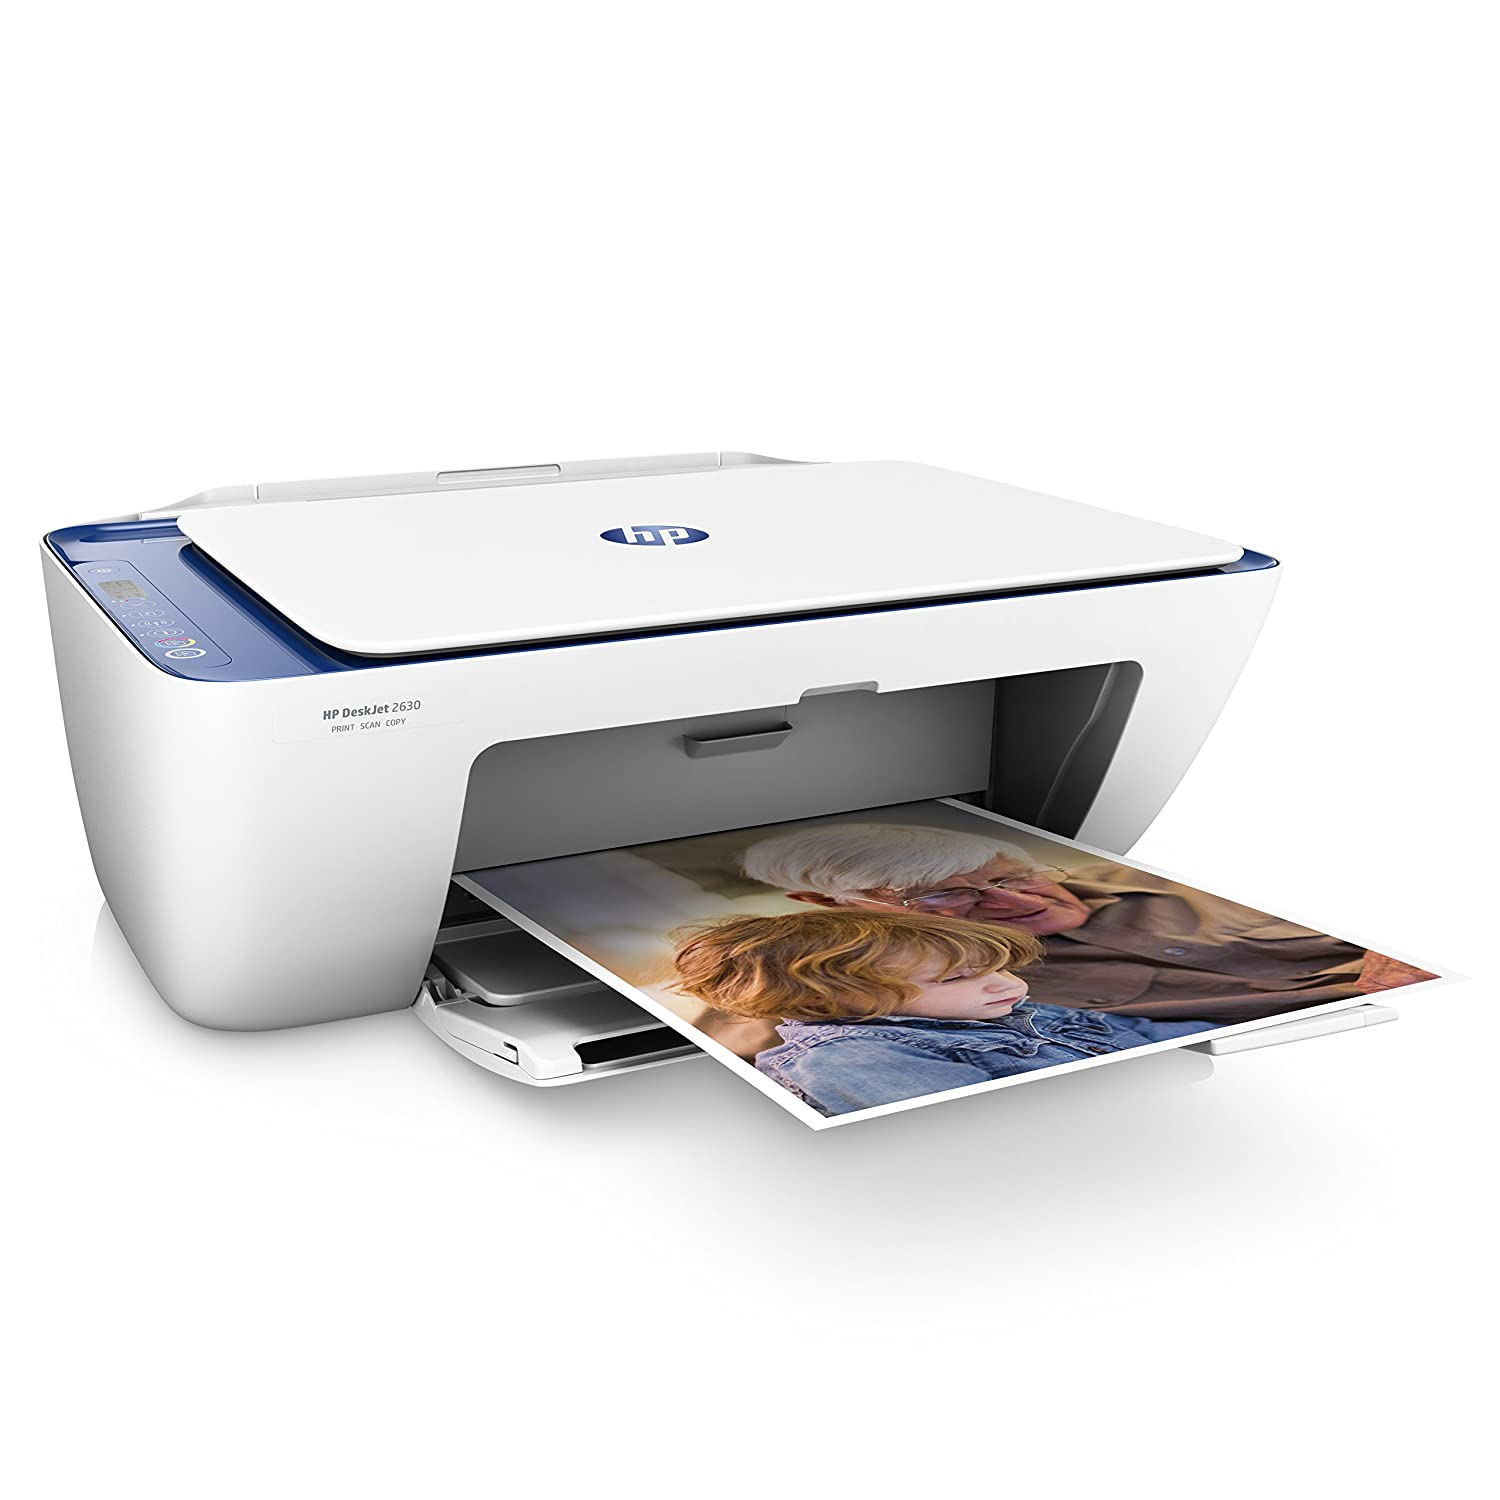 Amazon.com: Imprimante Multifonction HP Deskjet 2630 ...